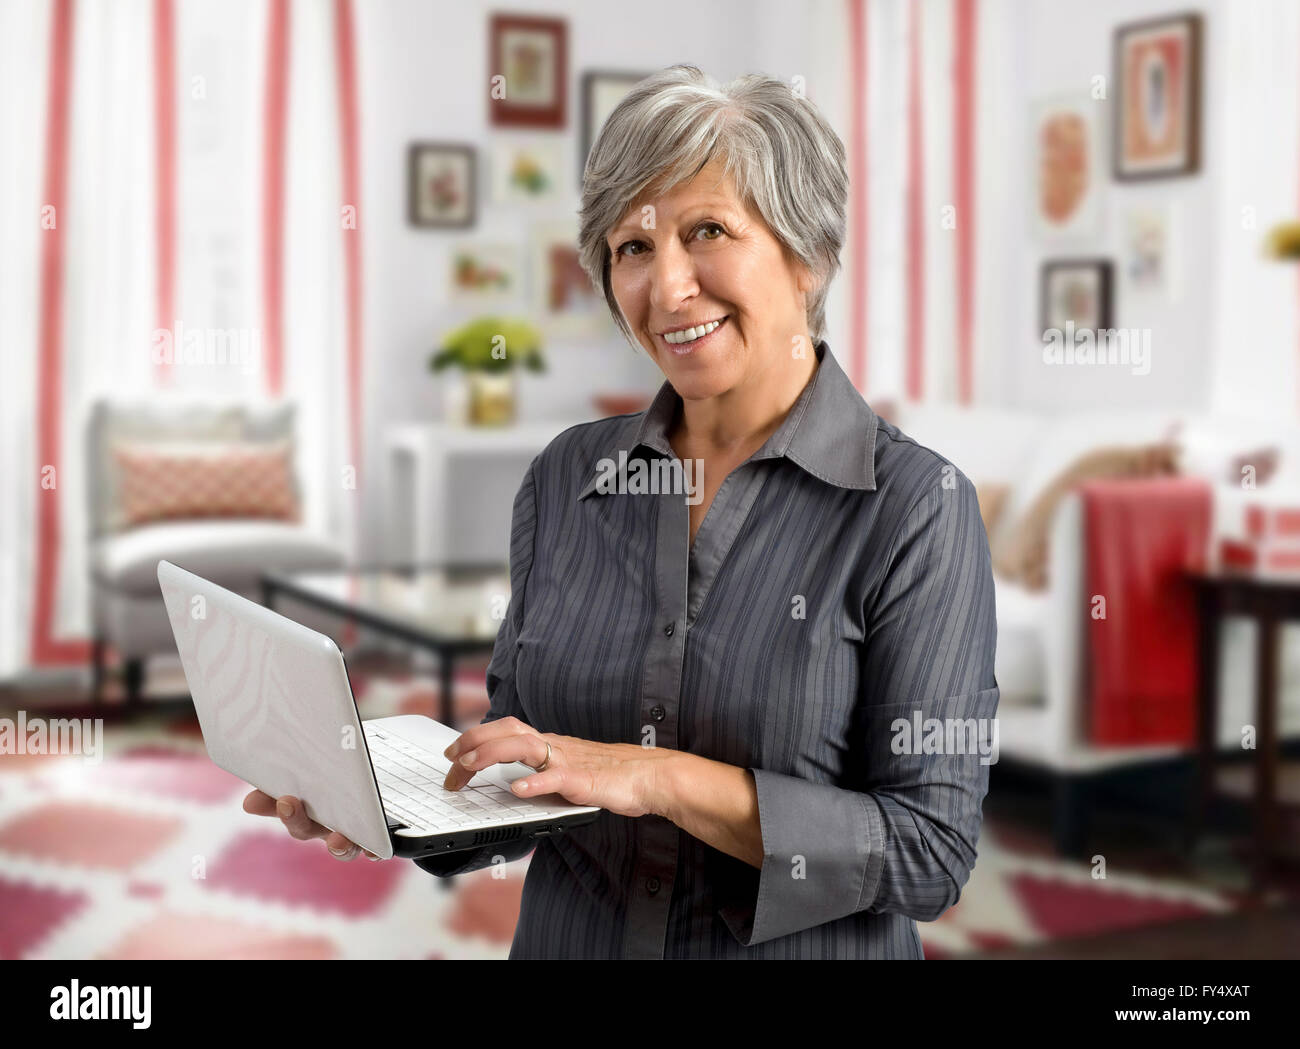 Senior woman using her handheld laptop as she stands in the living room of her house - Stock Image